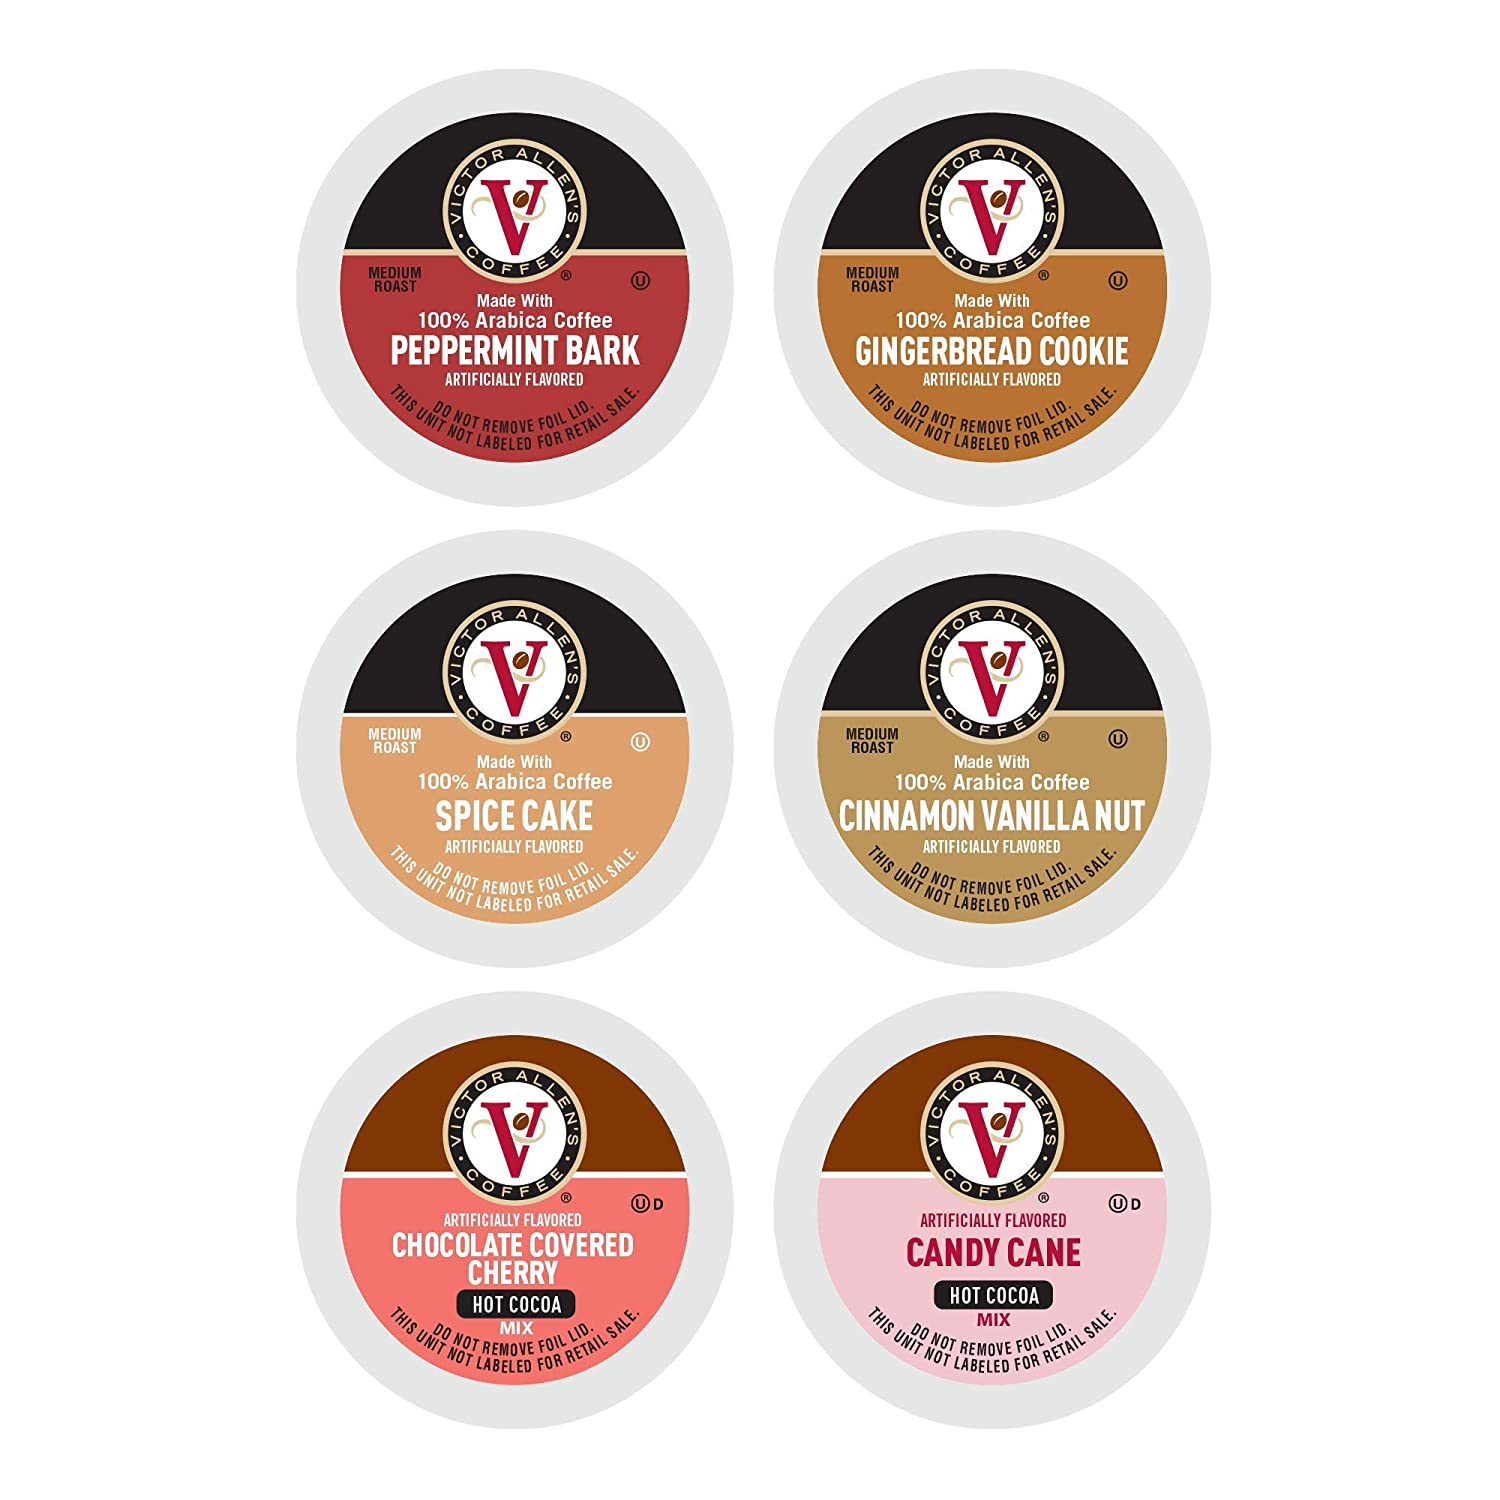 Victor Allen's Coffee and Cocoa Flavored Holiday Variety Pack (Peppermint Bark, Gingerbread Cookie, Candy Cane and Hot Cocoa), 96 Count Single Serve Coffee Pods for Keurig K-Cup Brewers